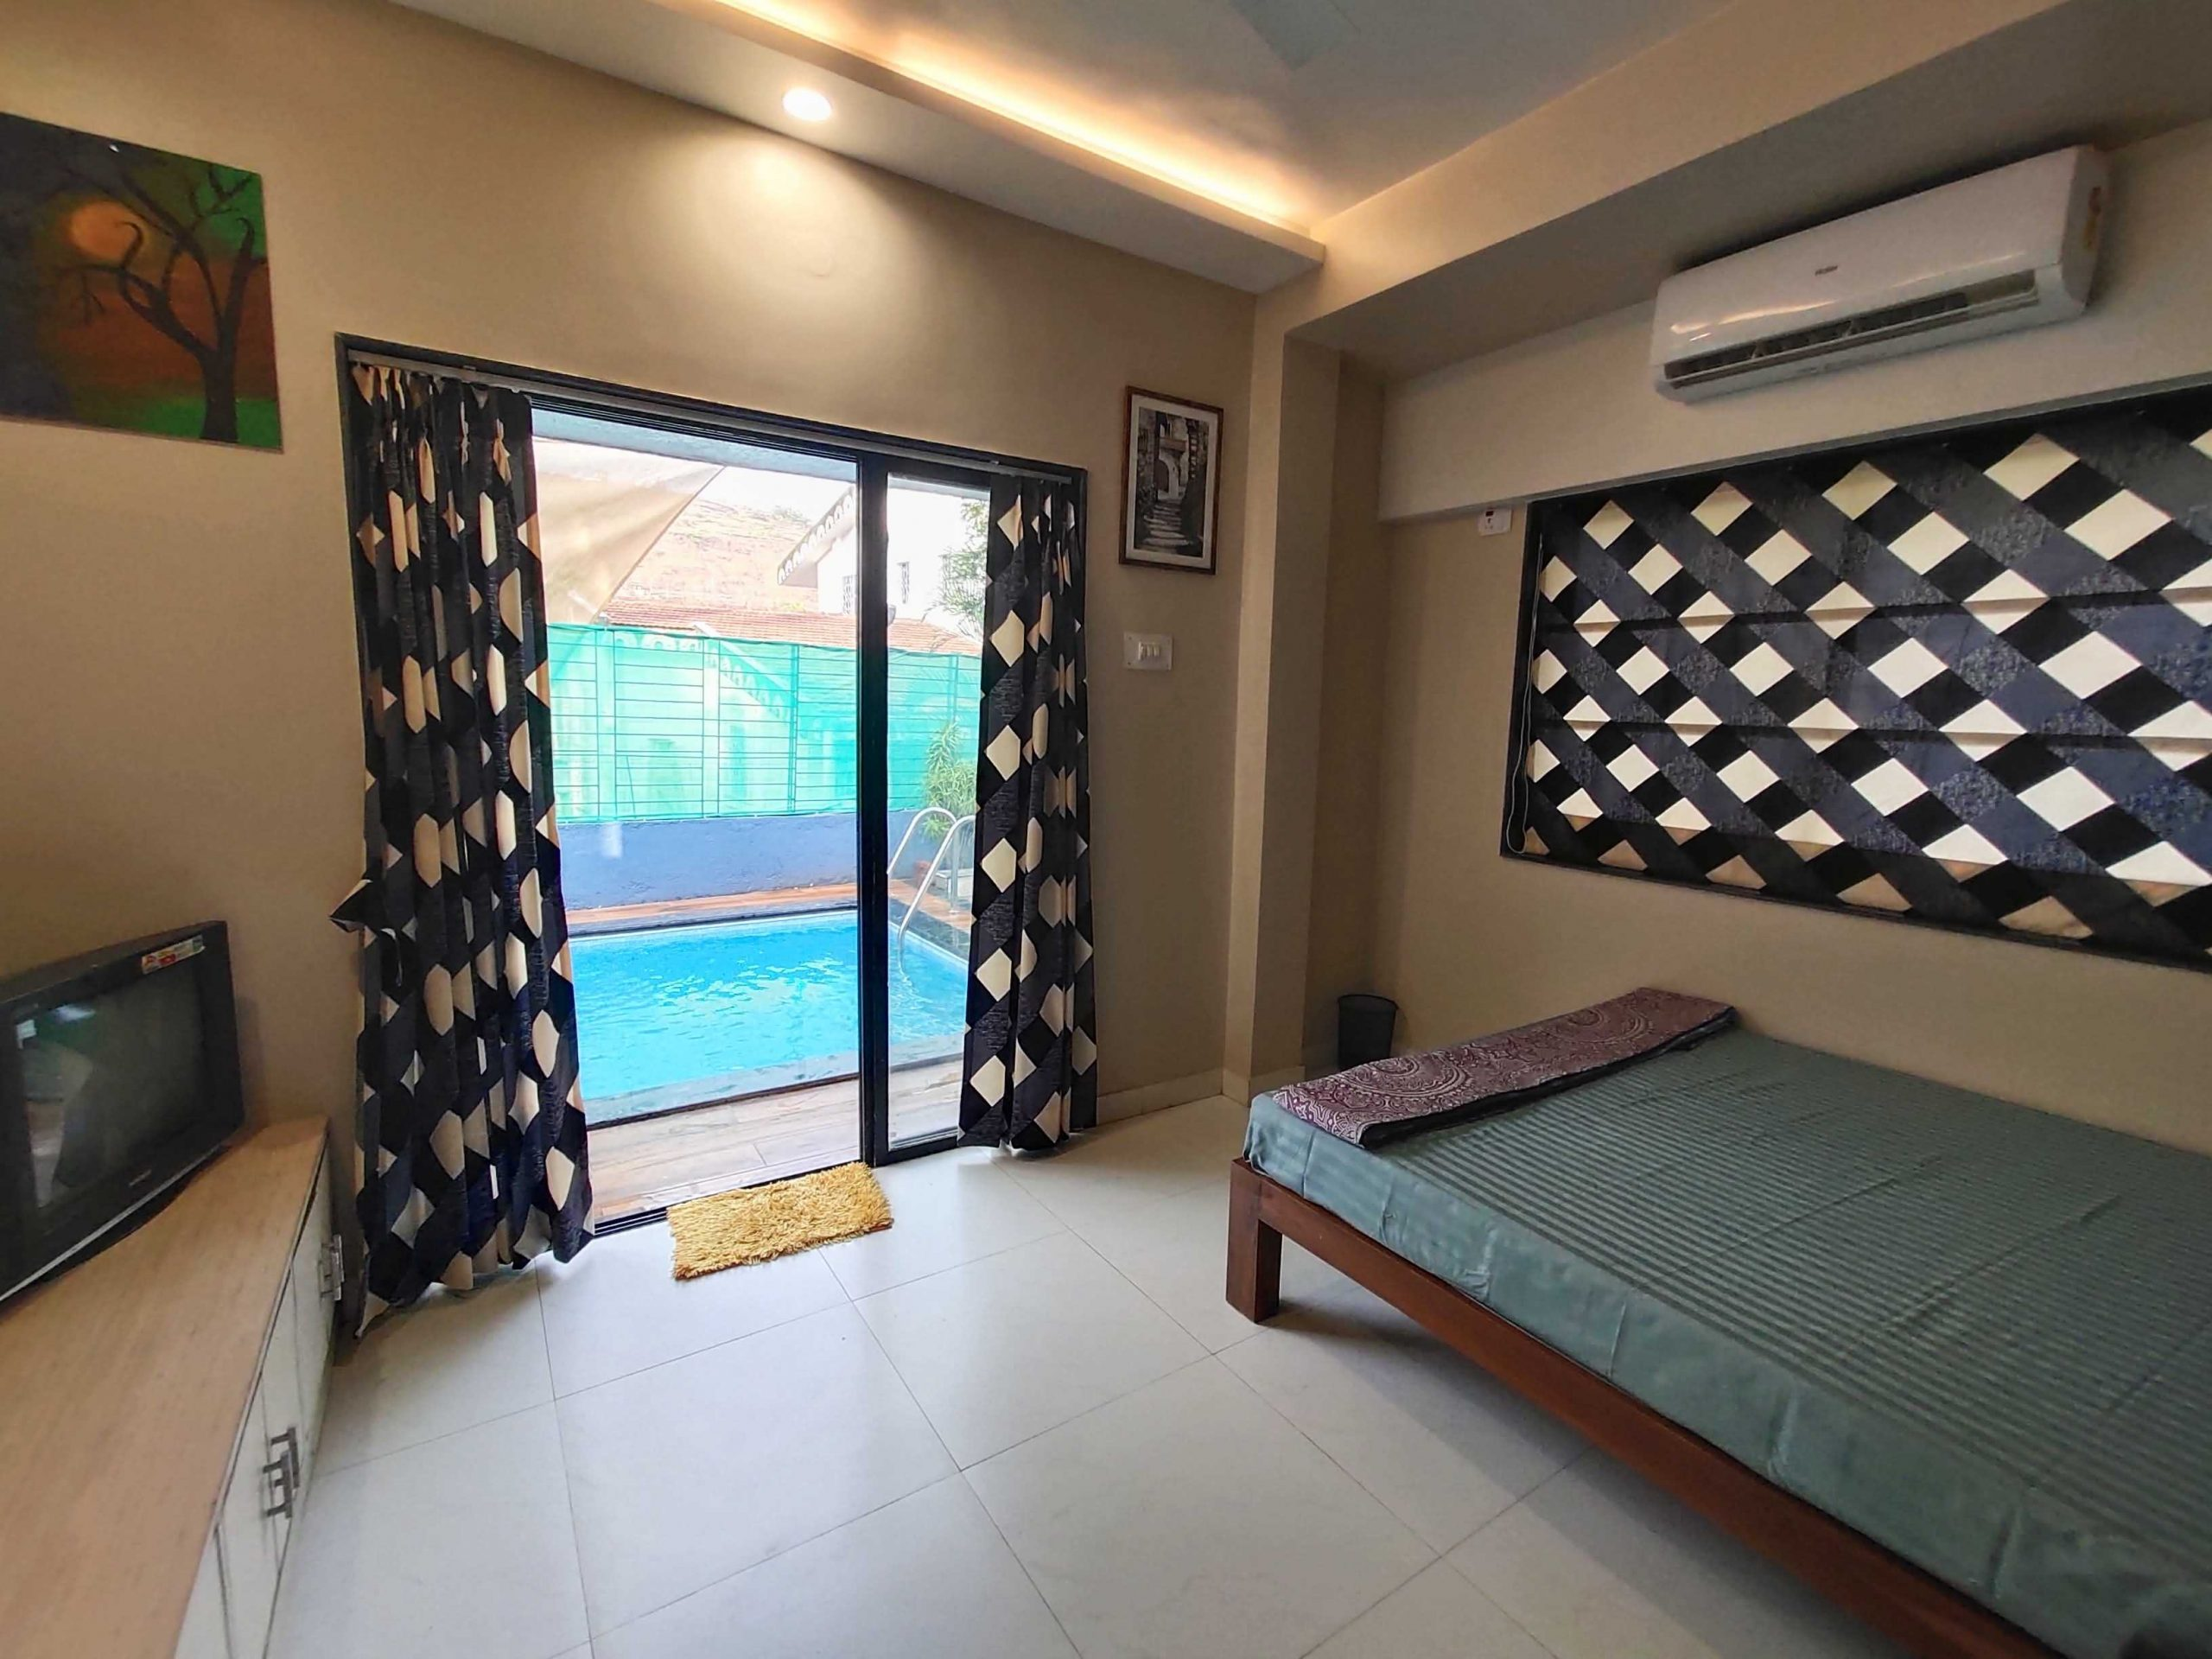 Bedroom with Swimming pool view